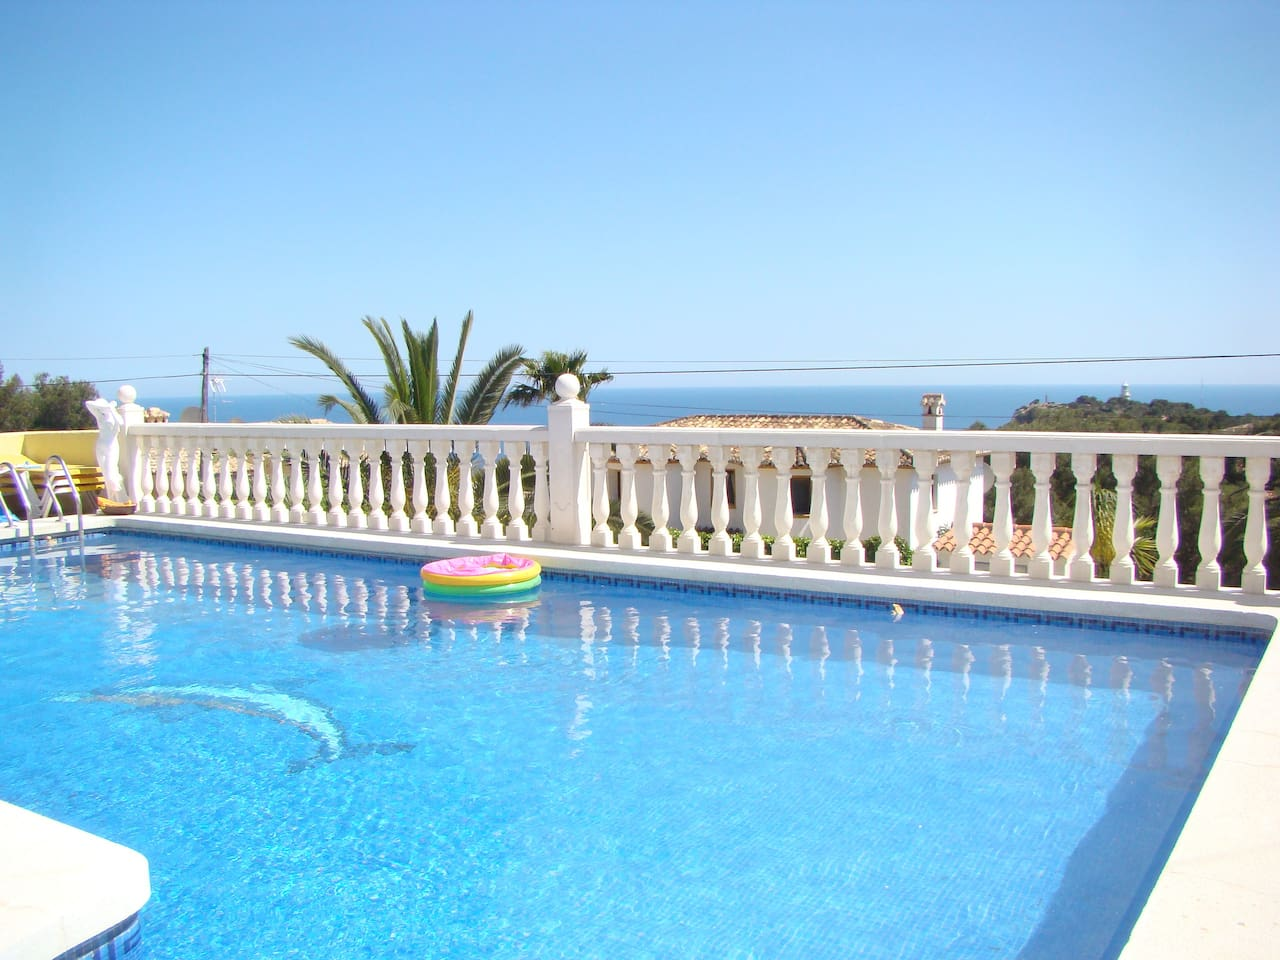 The pool has magnificent views over the Mediterranean and the local lighthouse